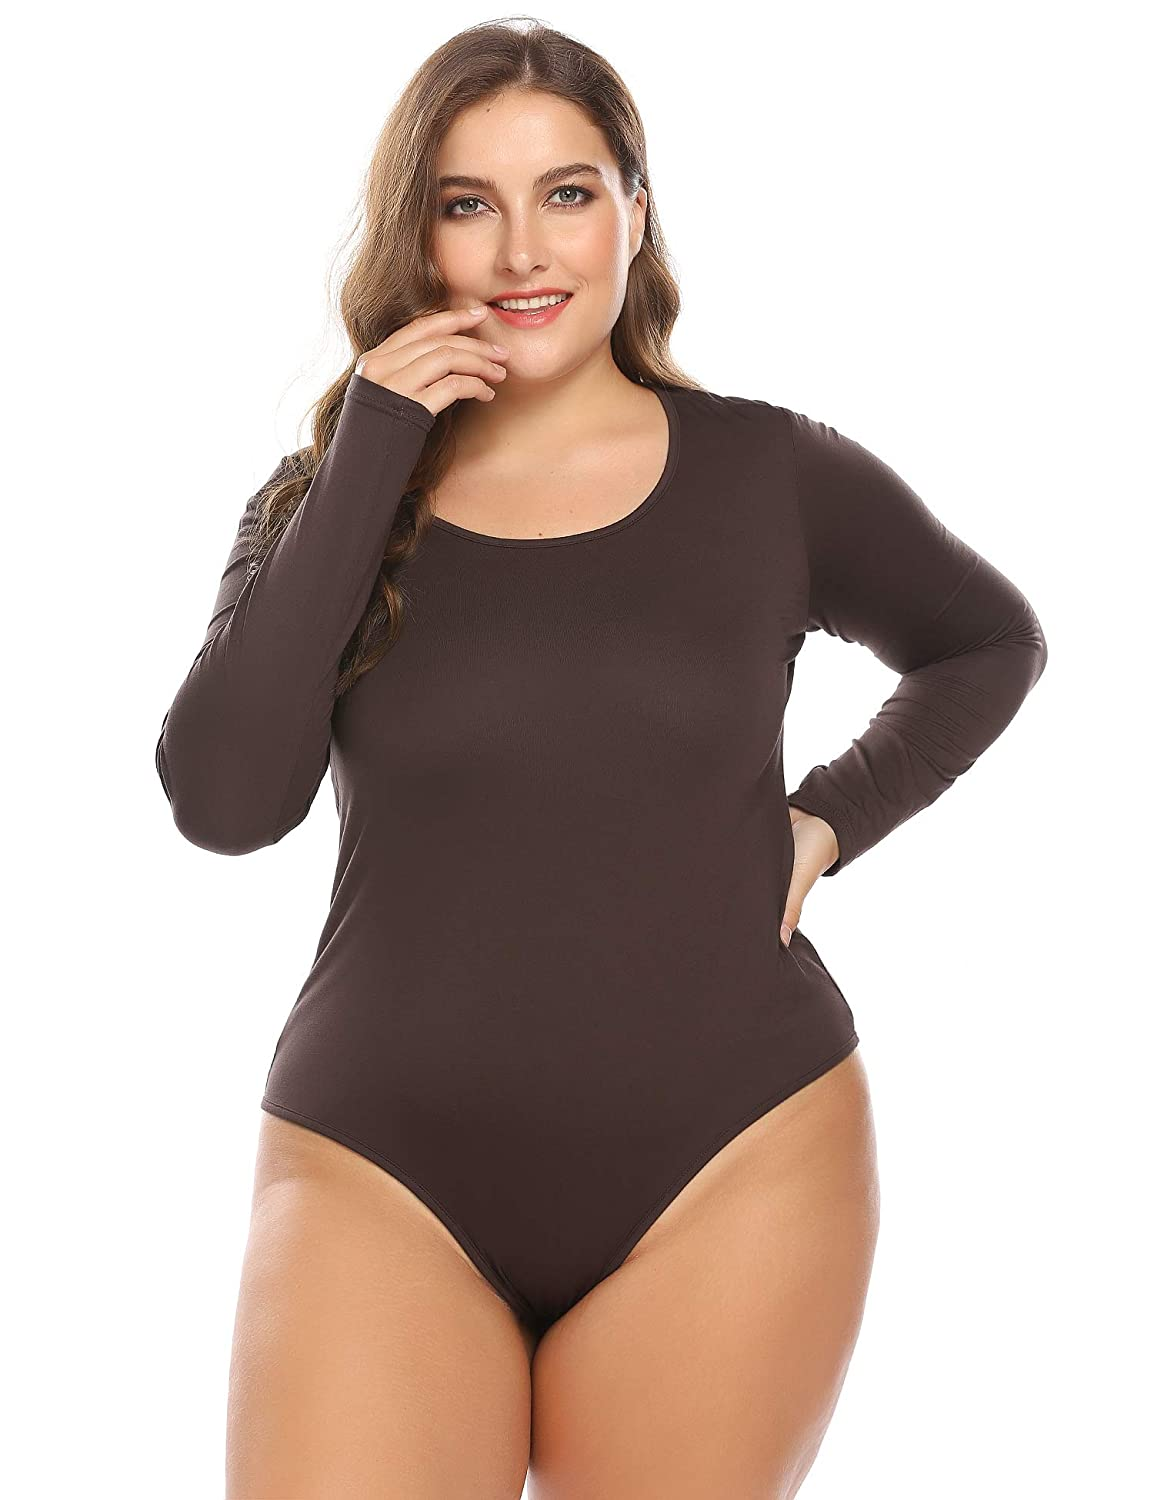 INVOLAND Plus Size Long Sleeve Bodysuits Tops for Women Leotards One-Piece Shirts with Scoop Neck Stretchy Basic Top Bodycon Babydoll Jumpsuit Lingerie Underwear